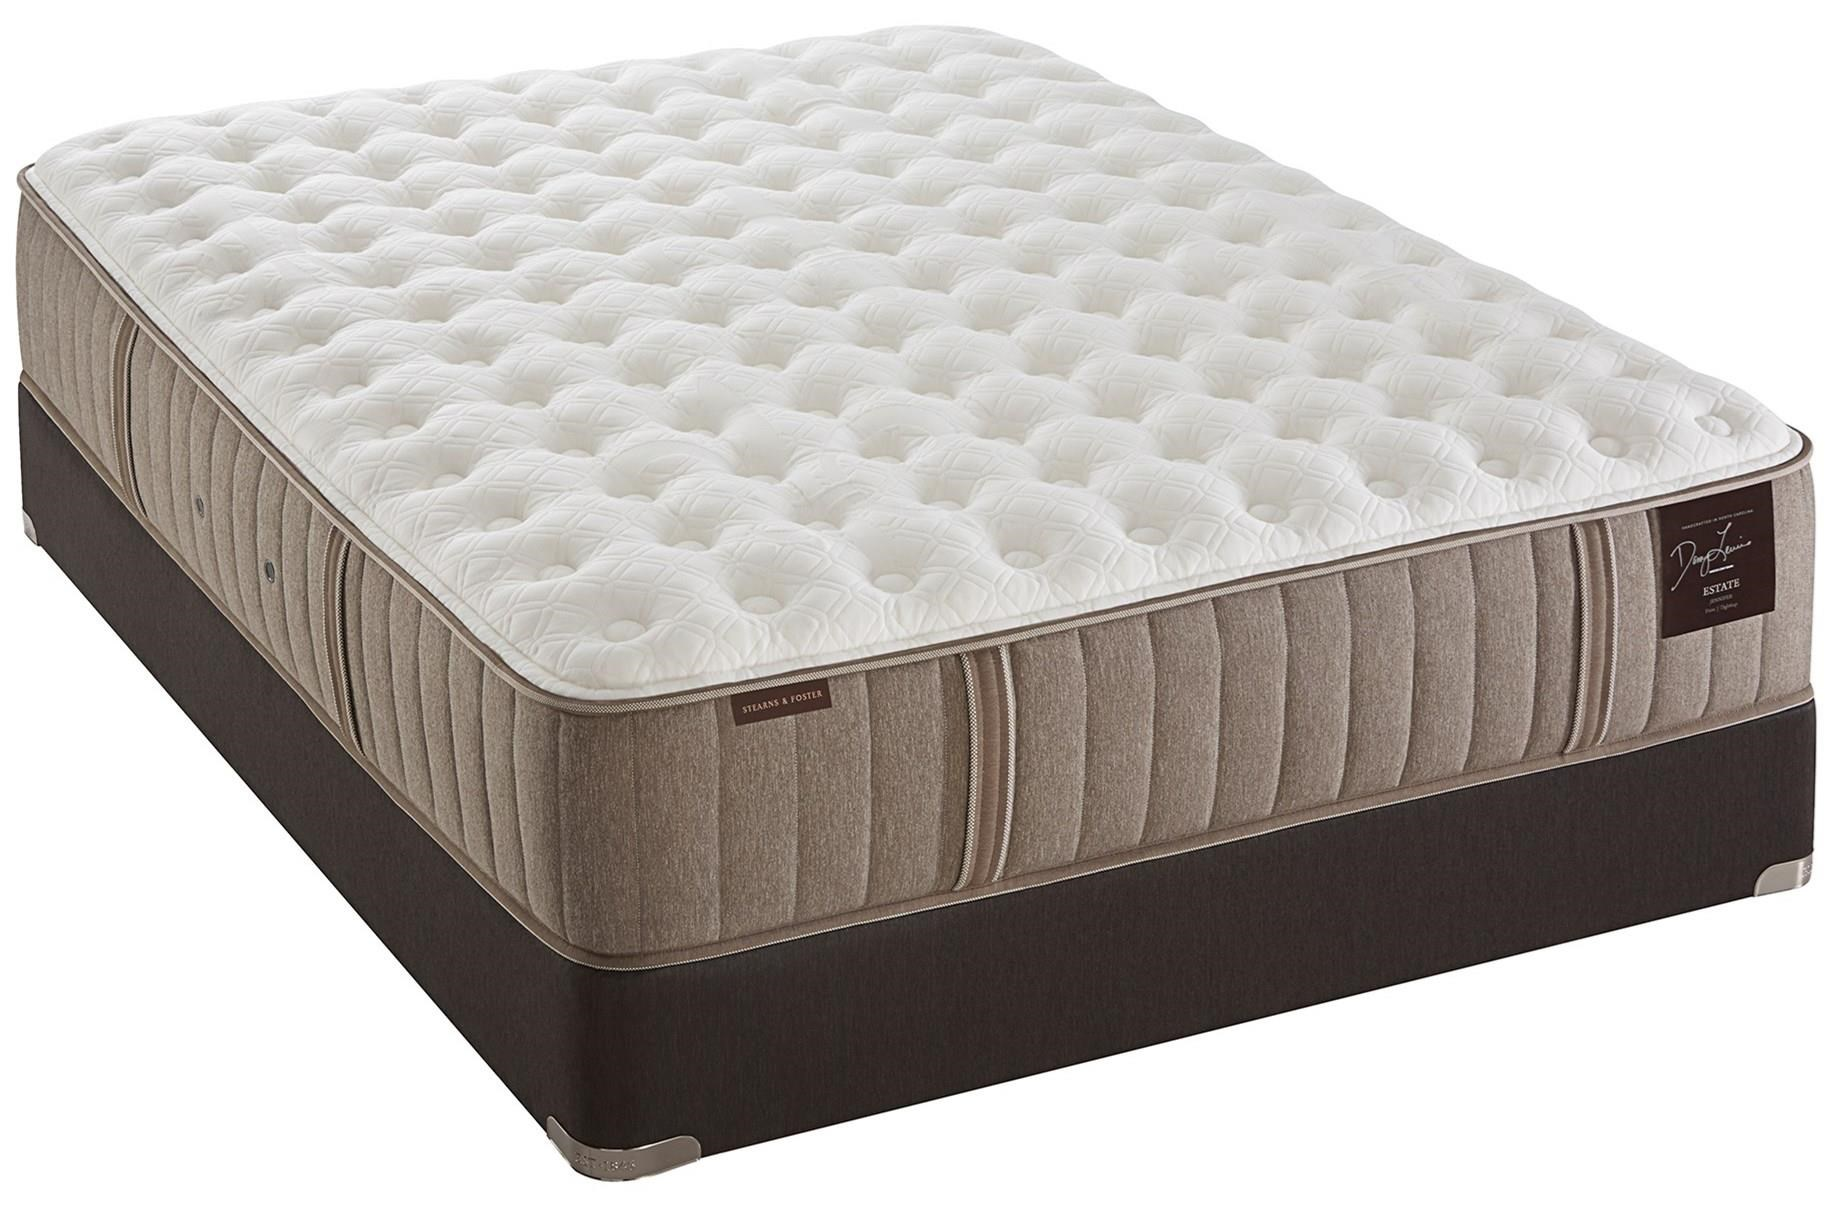 Stearns & Foster Oak Terrace Luxury Firm Queen Firm Tight Top Mattress Set - Item Number: Firm-Q+609663Q